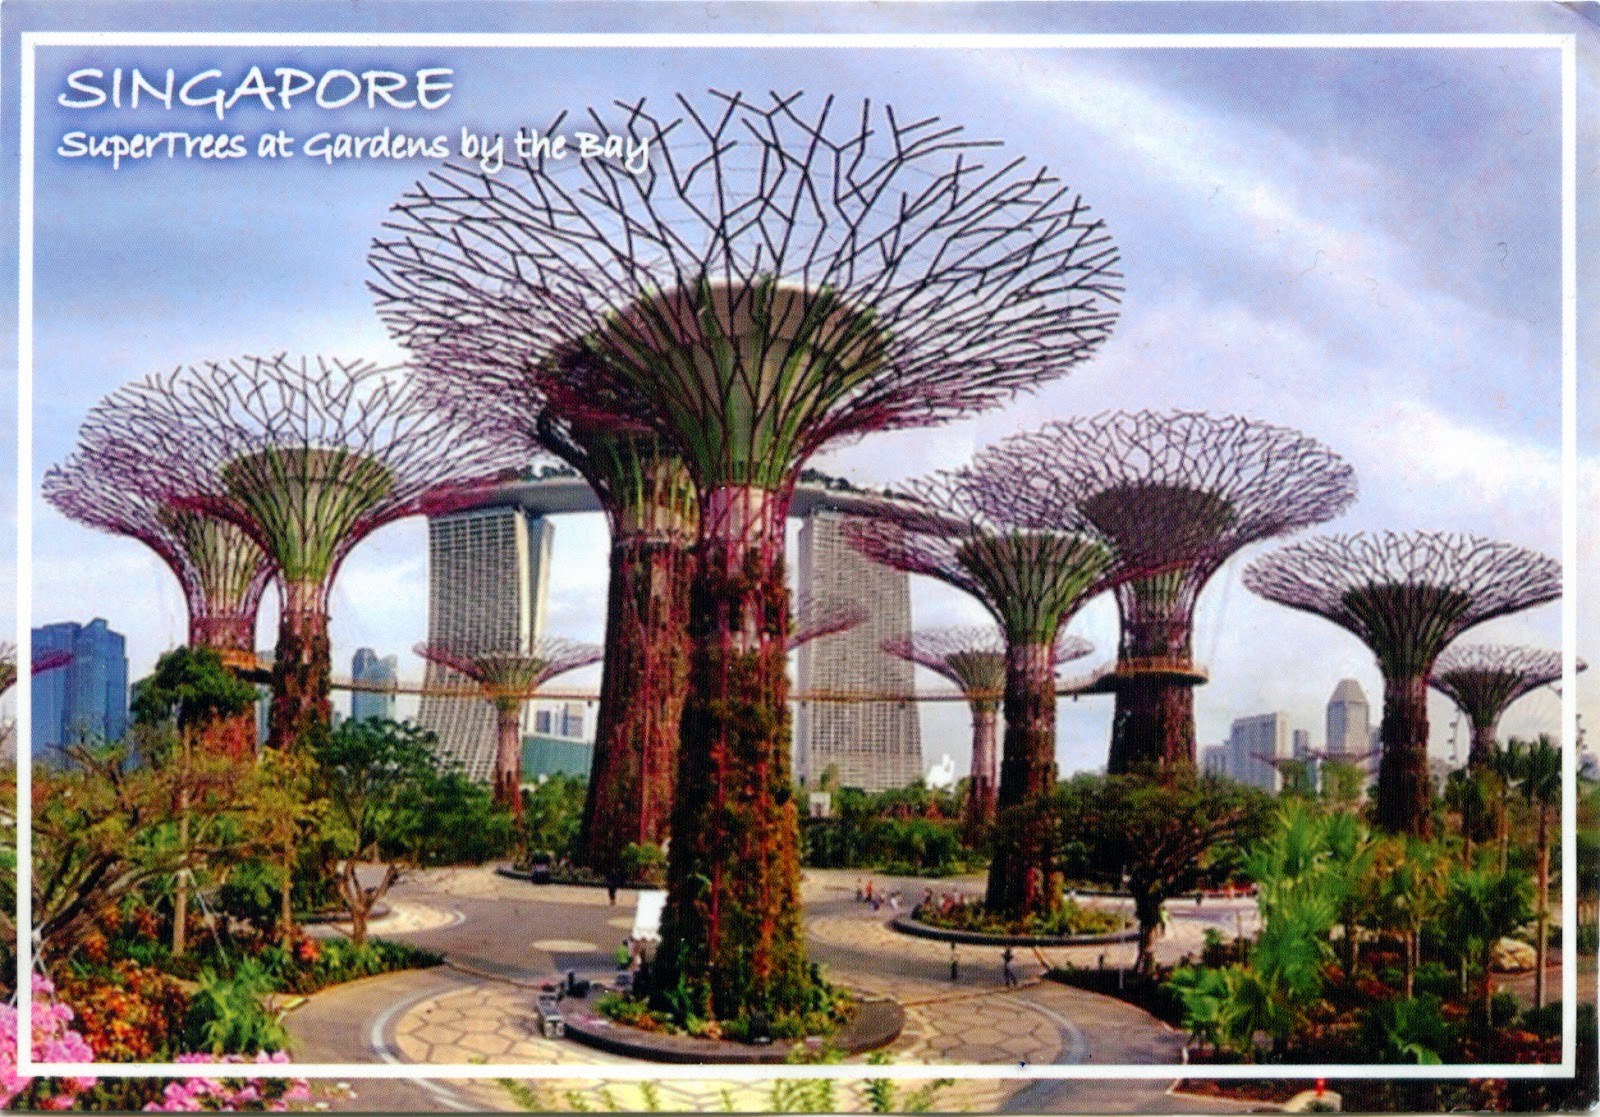 , COME TO MY HOME!: 0974 SINGAPORE  Supertrees in Gardens by the Bay